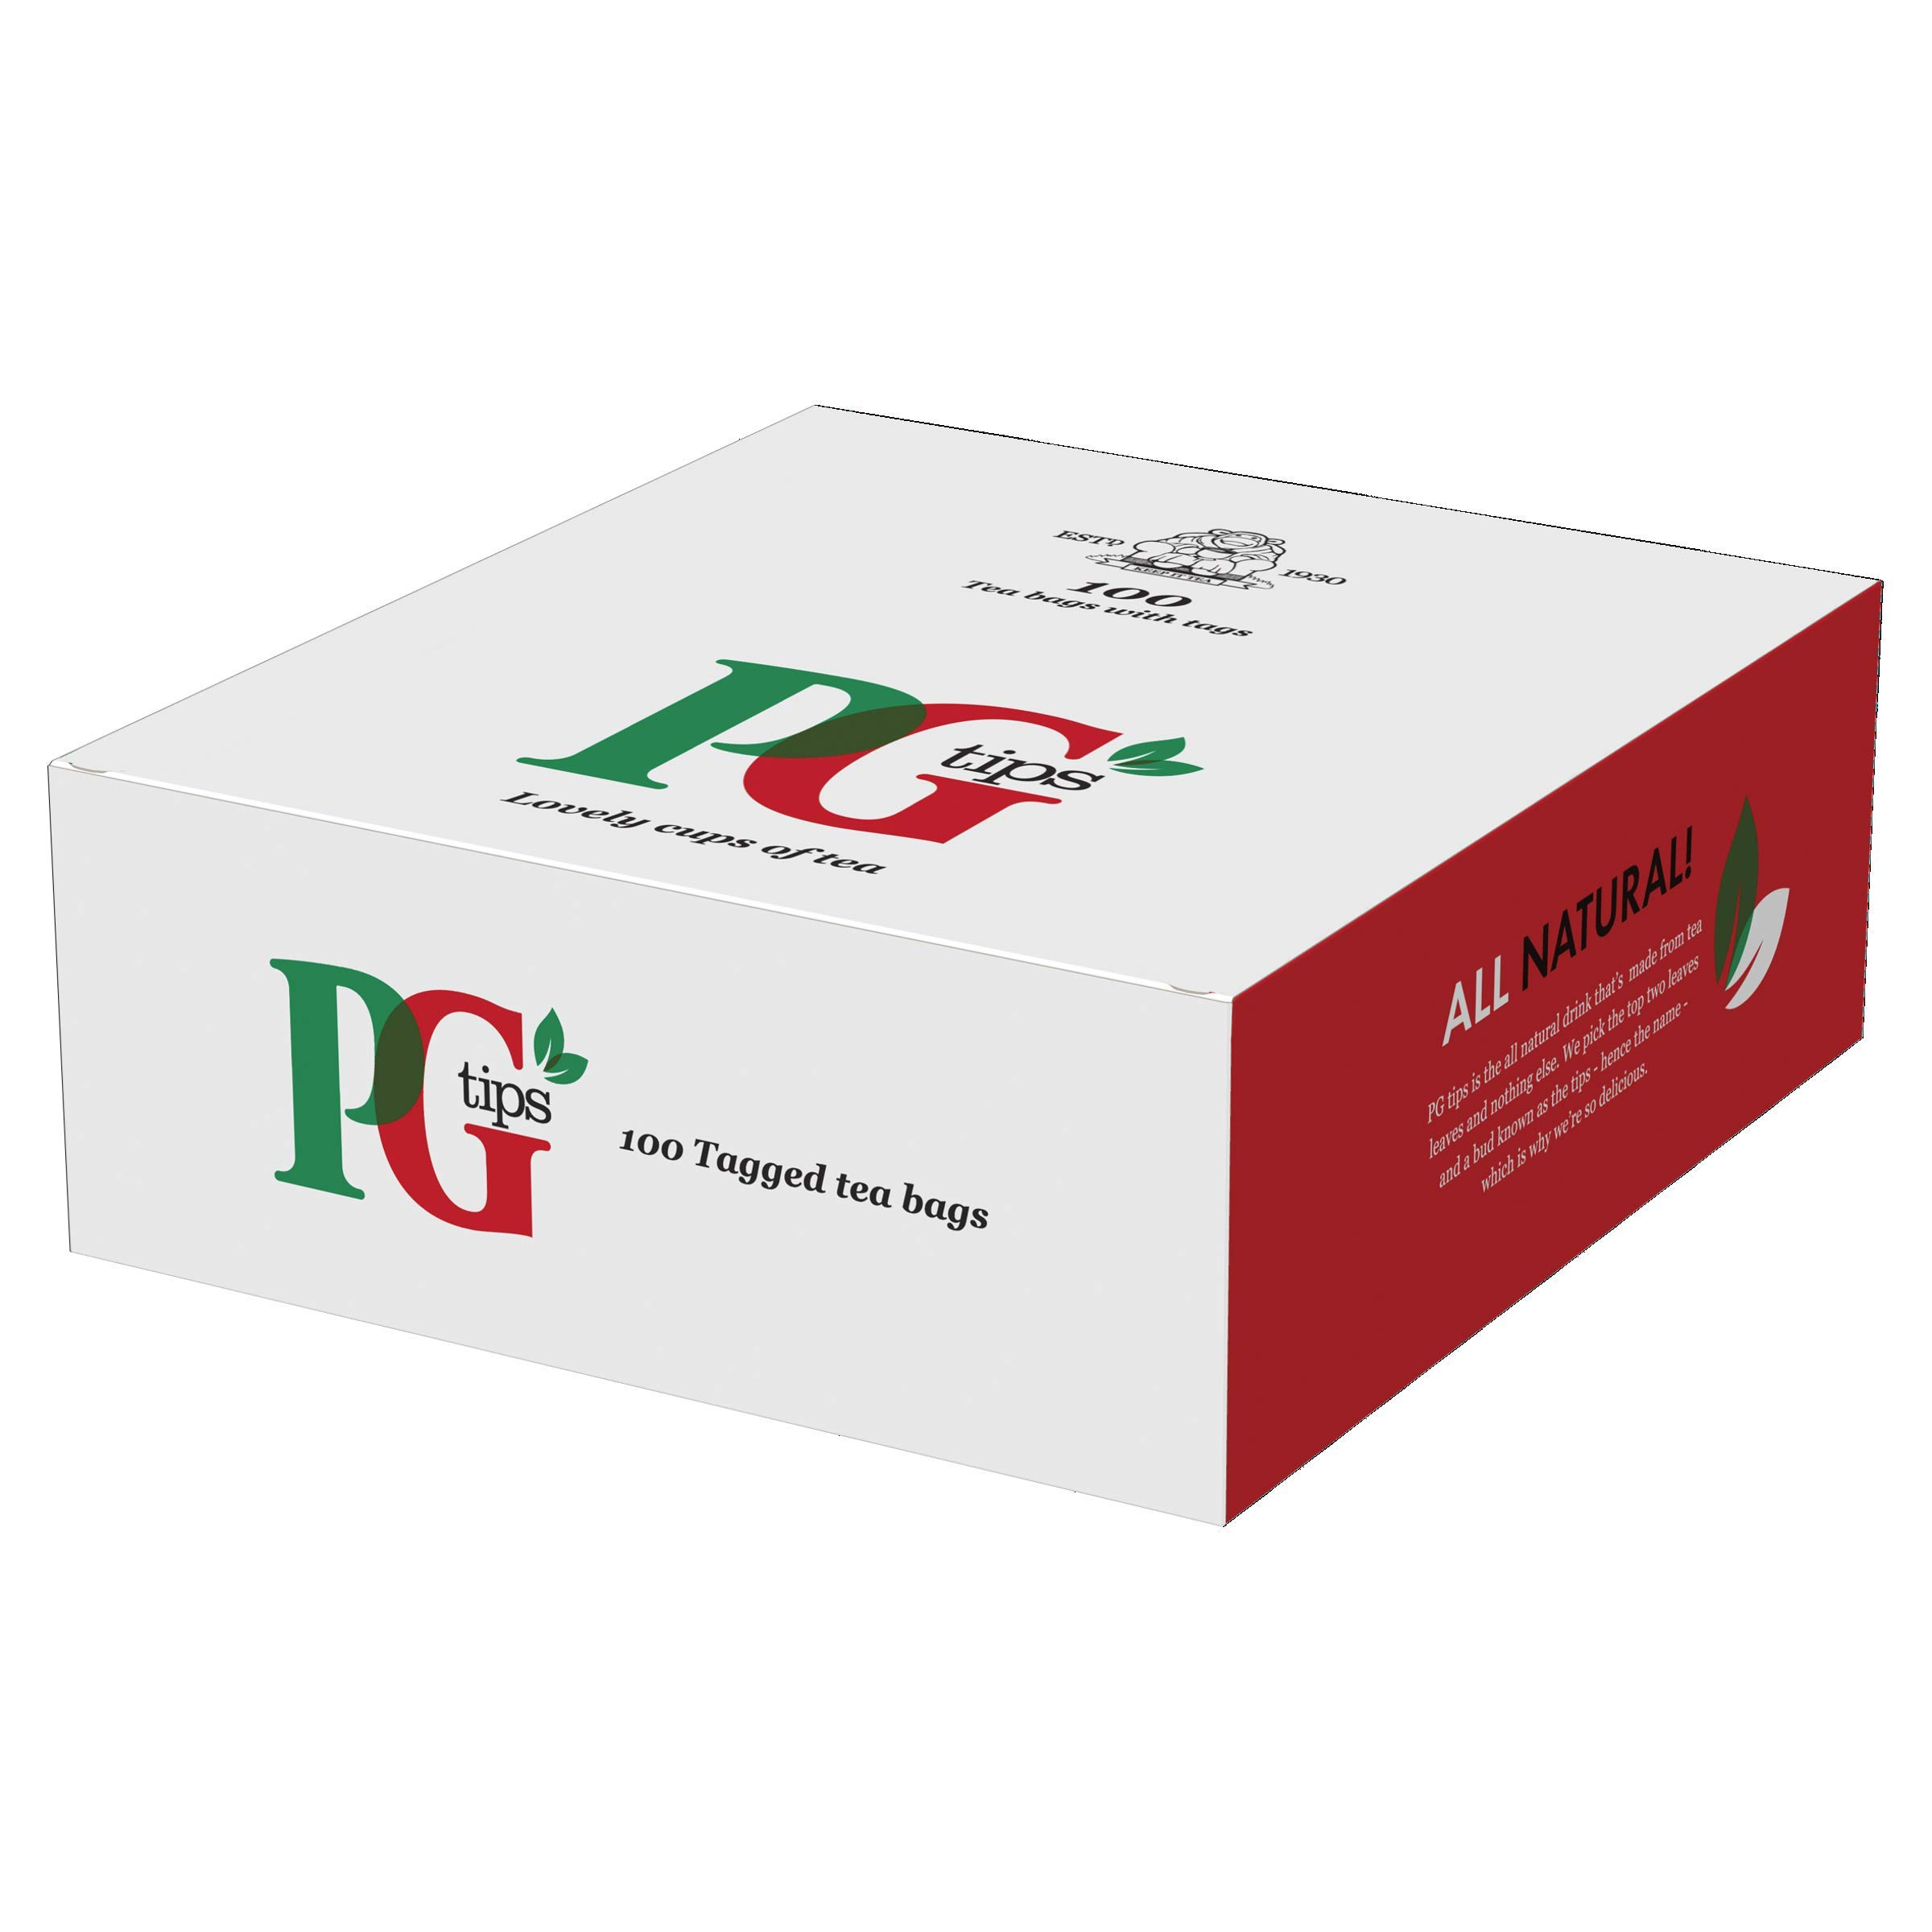 PG tips String and Tag One Cup Everyday Tea Bags (Pack of 100)